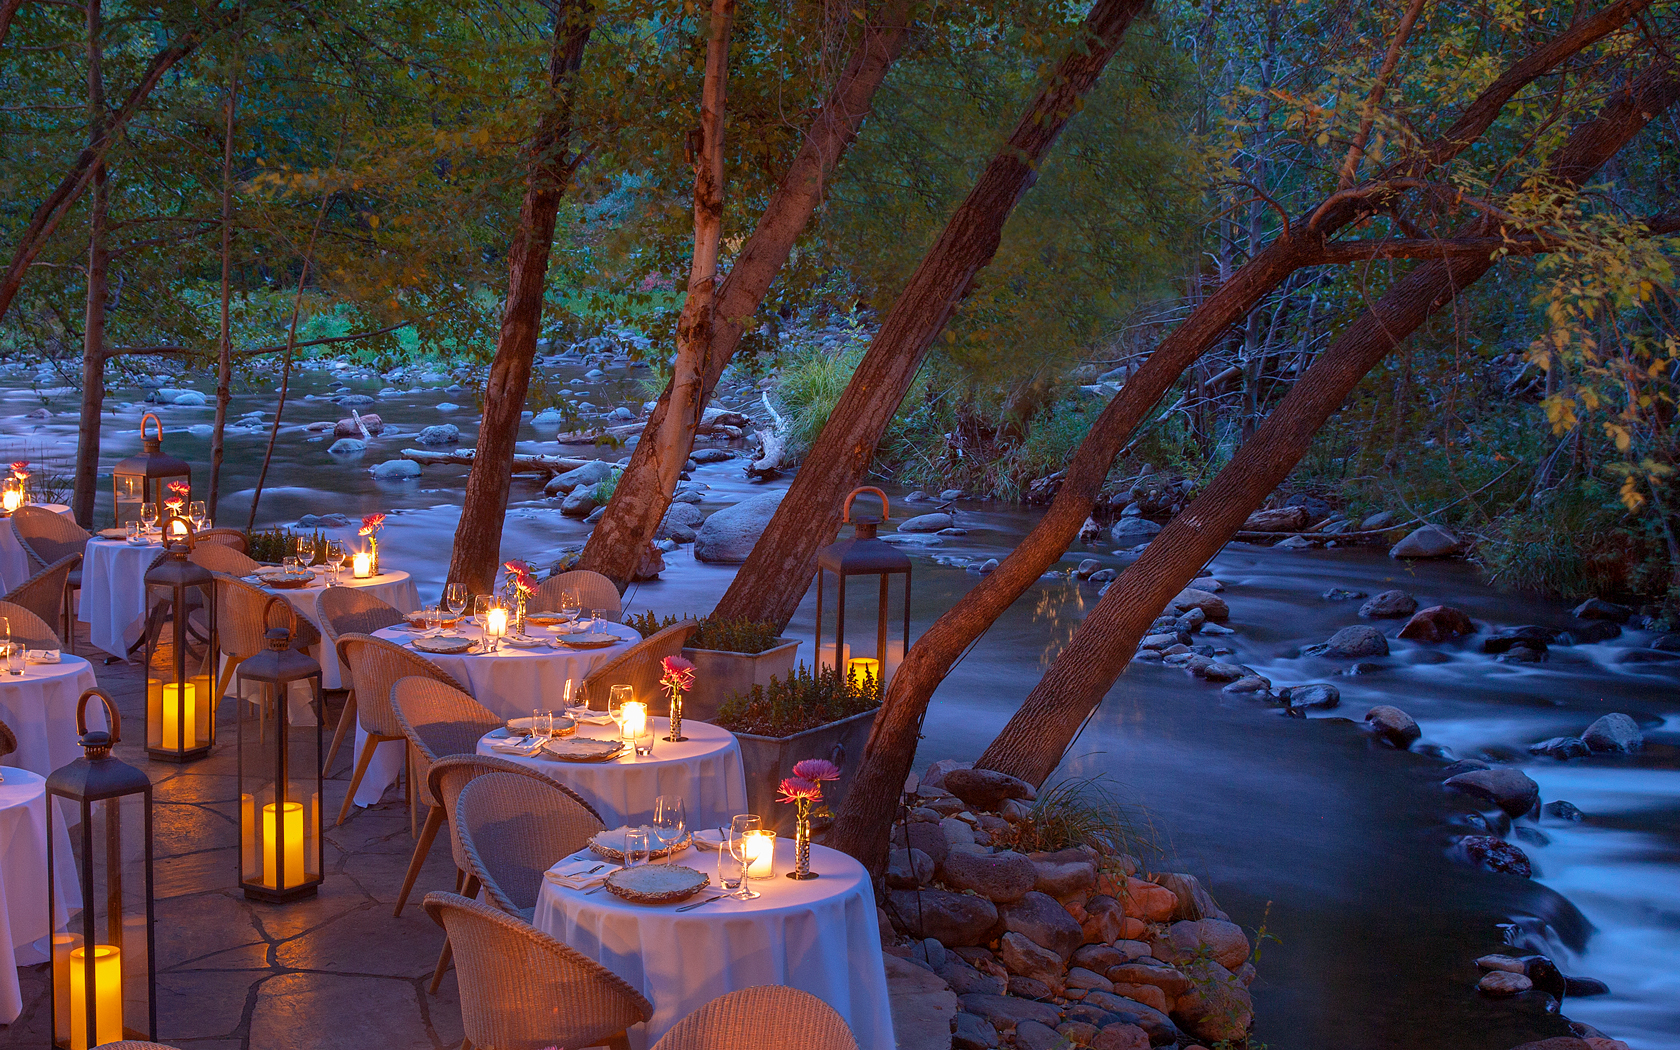 outdoor restaurant dining area with candle lit tables by a creek